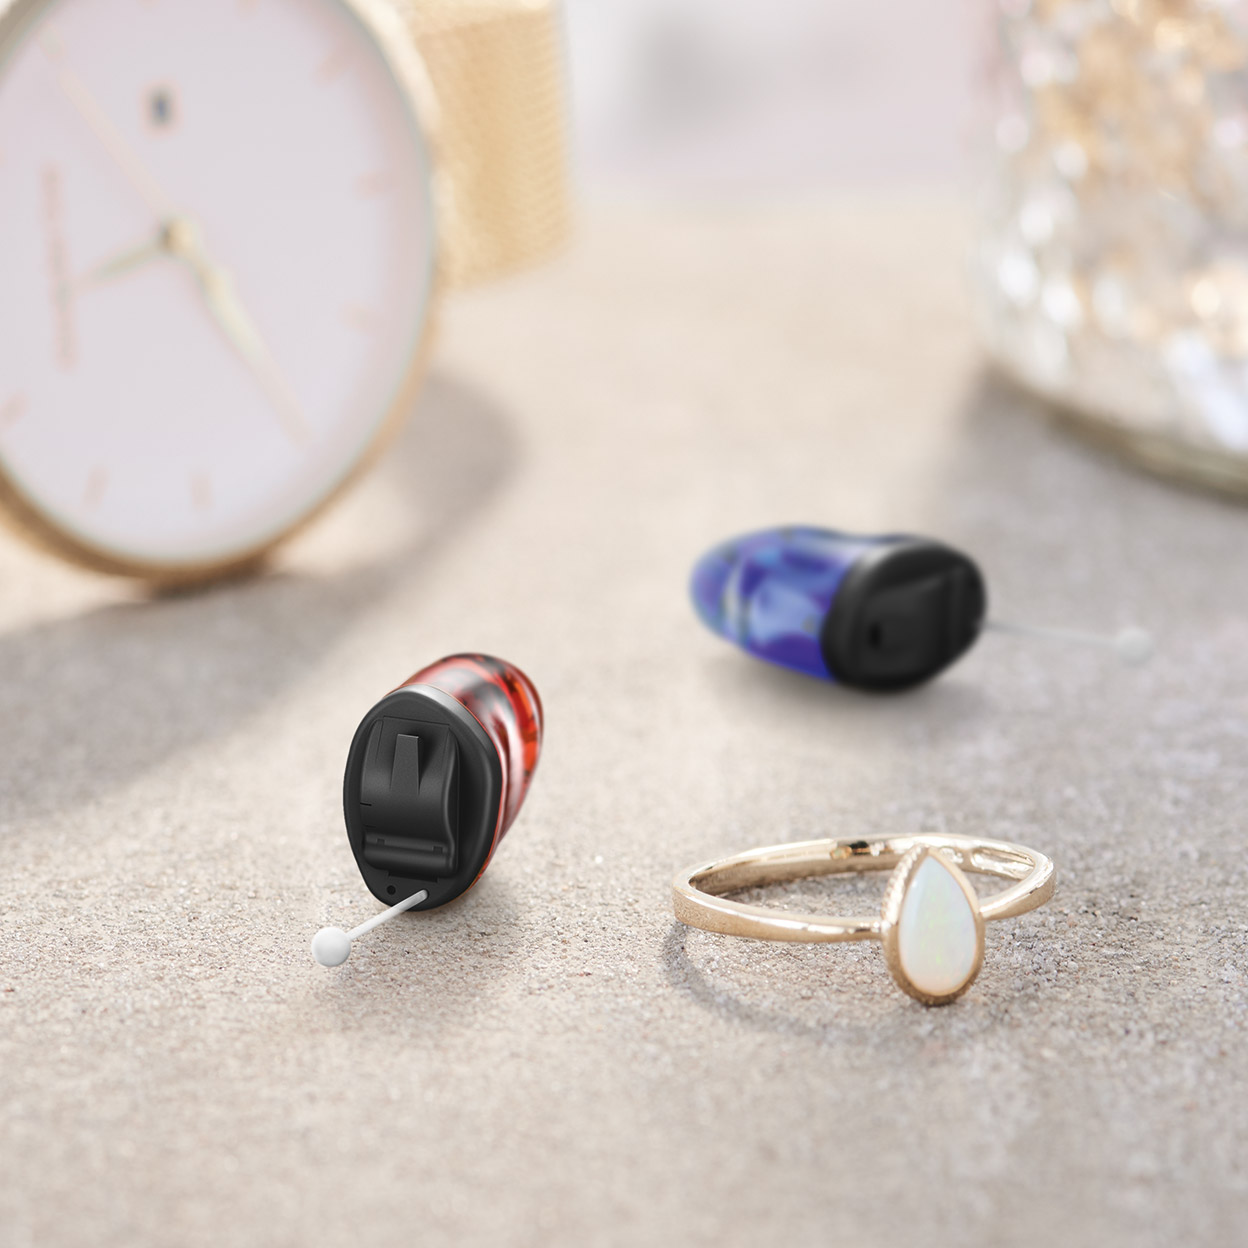 Tailor-made for your ear anatomy, Signia's Insio sits perfectly and almost unnoticeably in your ear for a high level of discretion and wearing comfort.